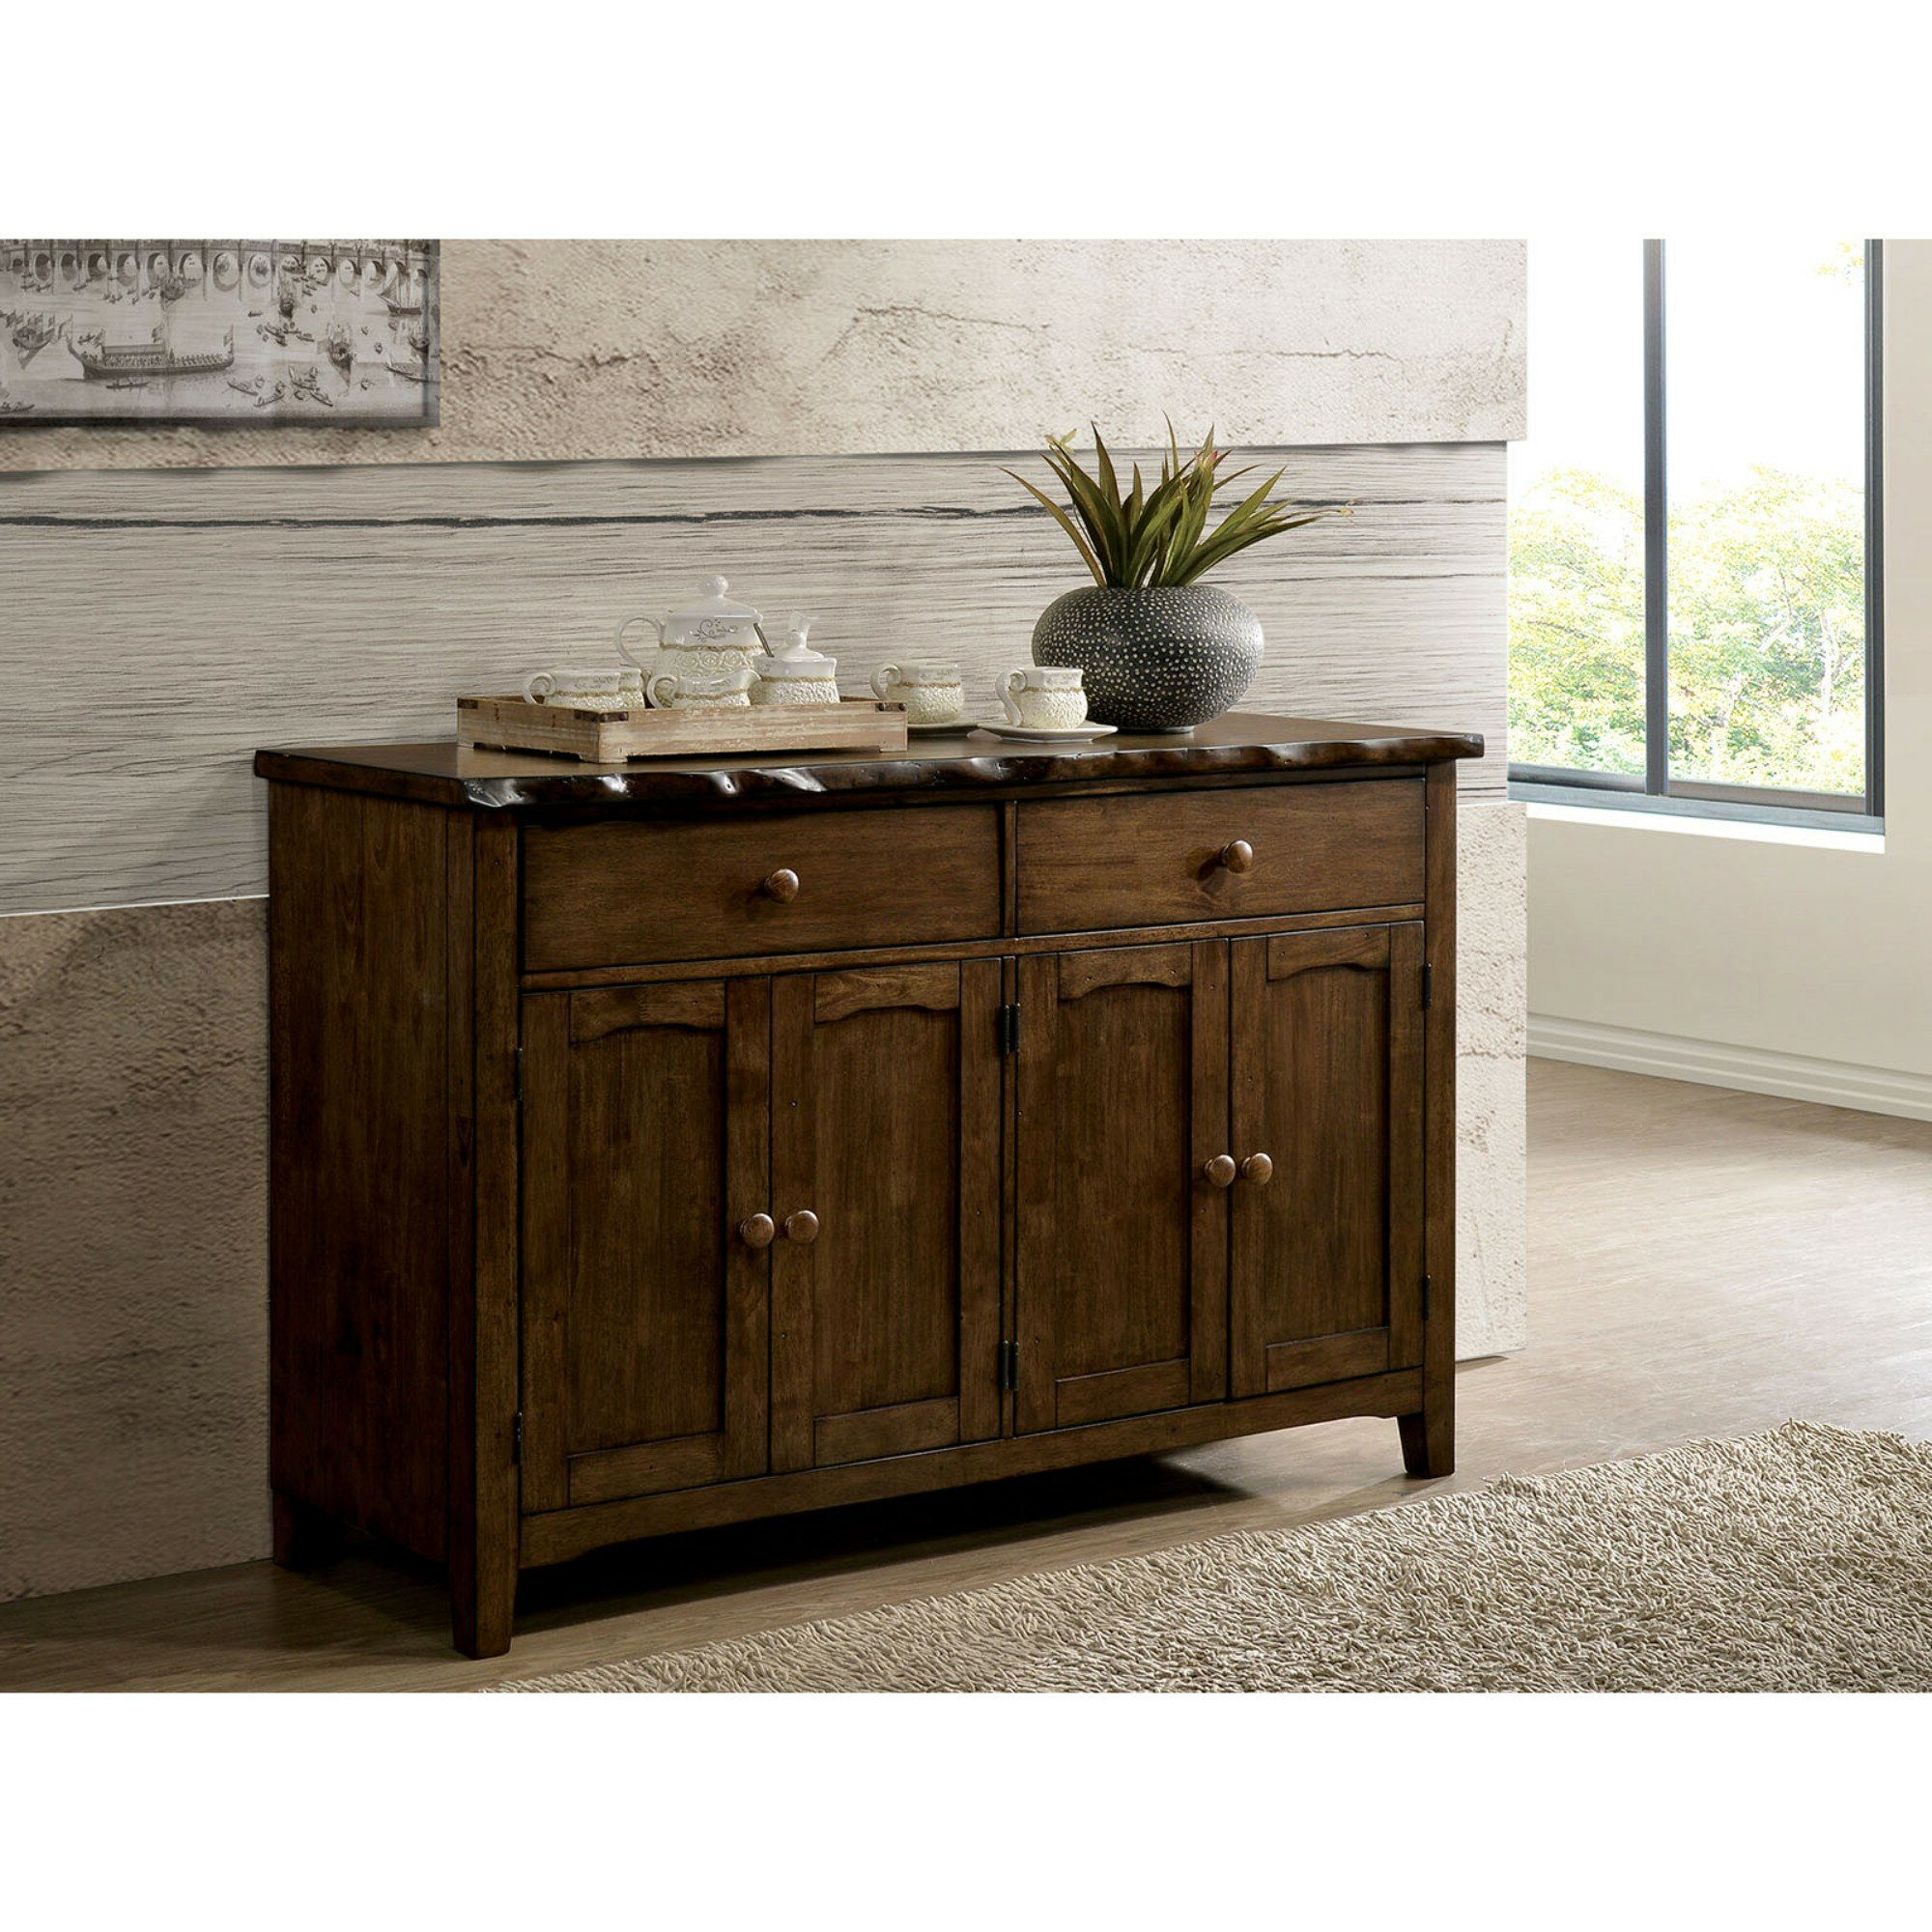 Preferred Sprowston Rustic Solid Wood Rectangular Sideboard Intended For Whitten Sideboards (Gallery 16 of 20)